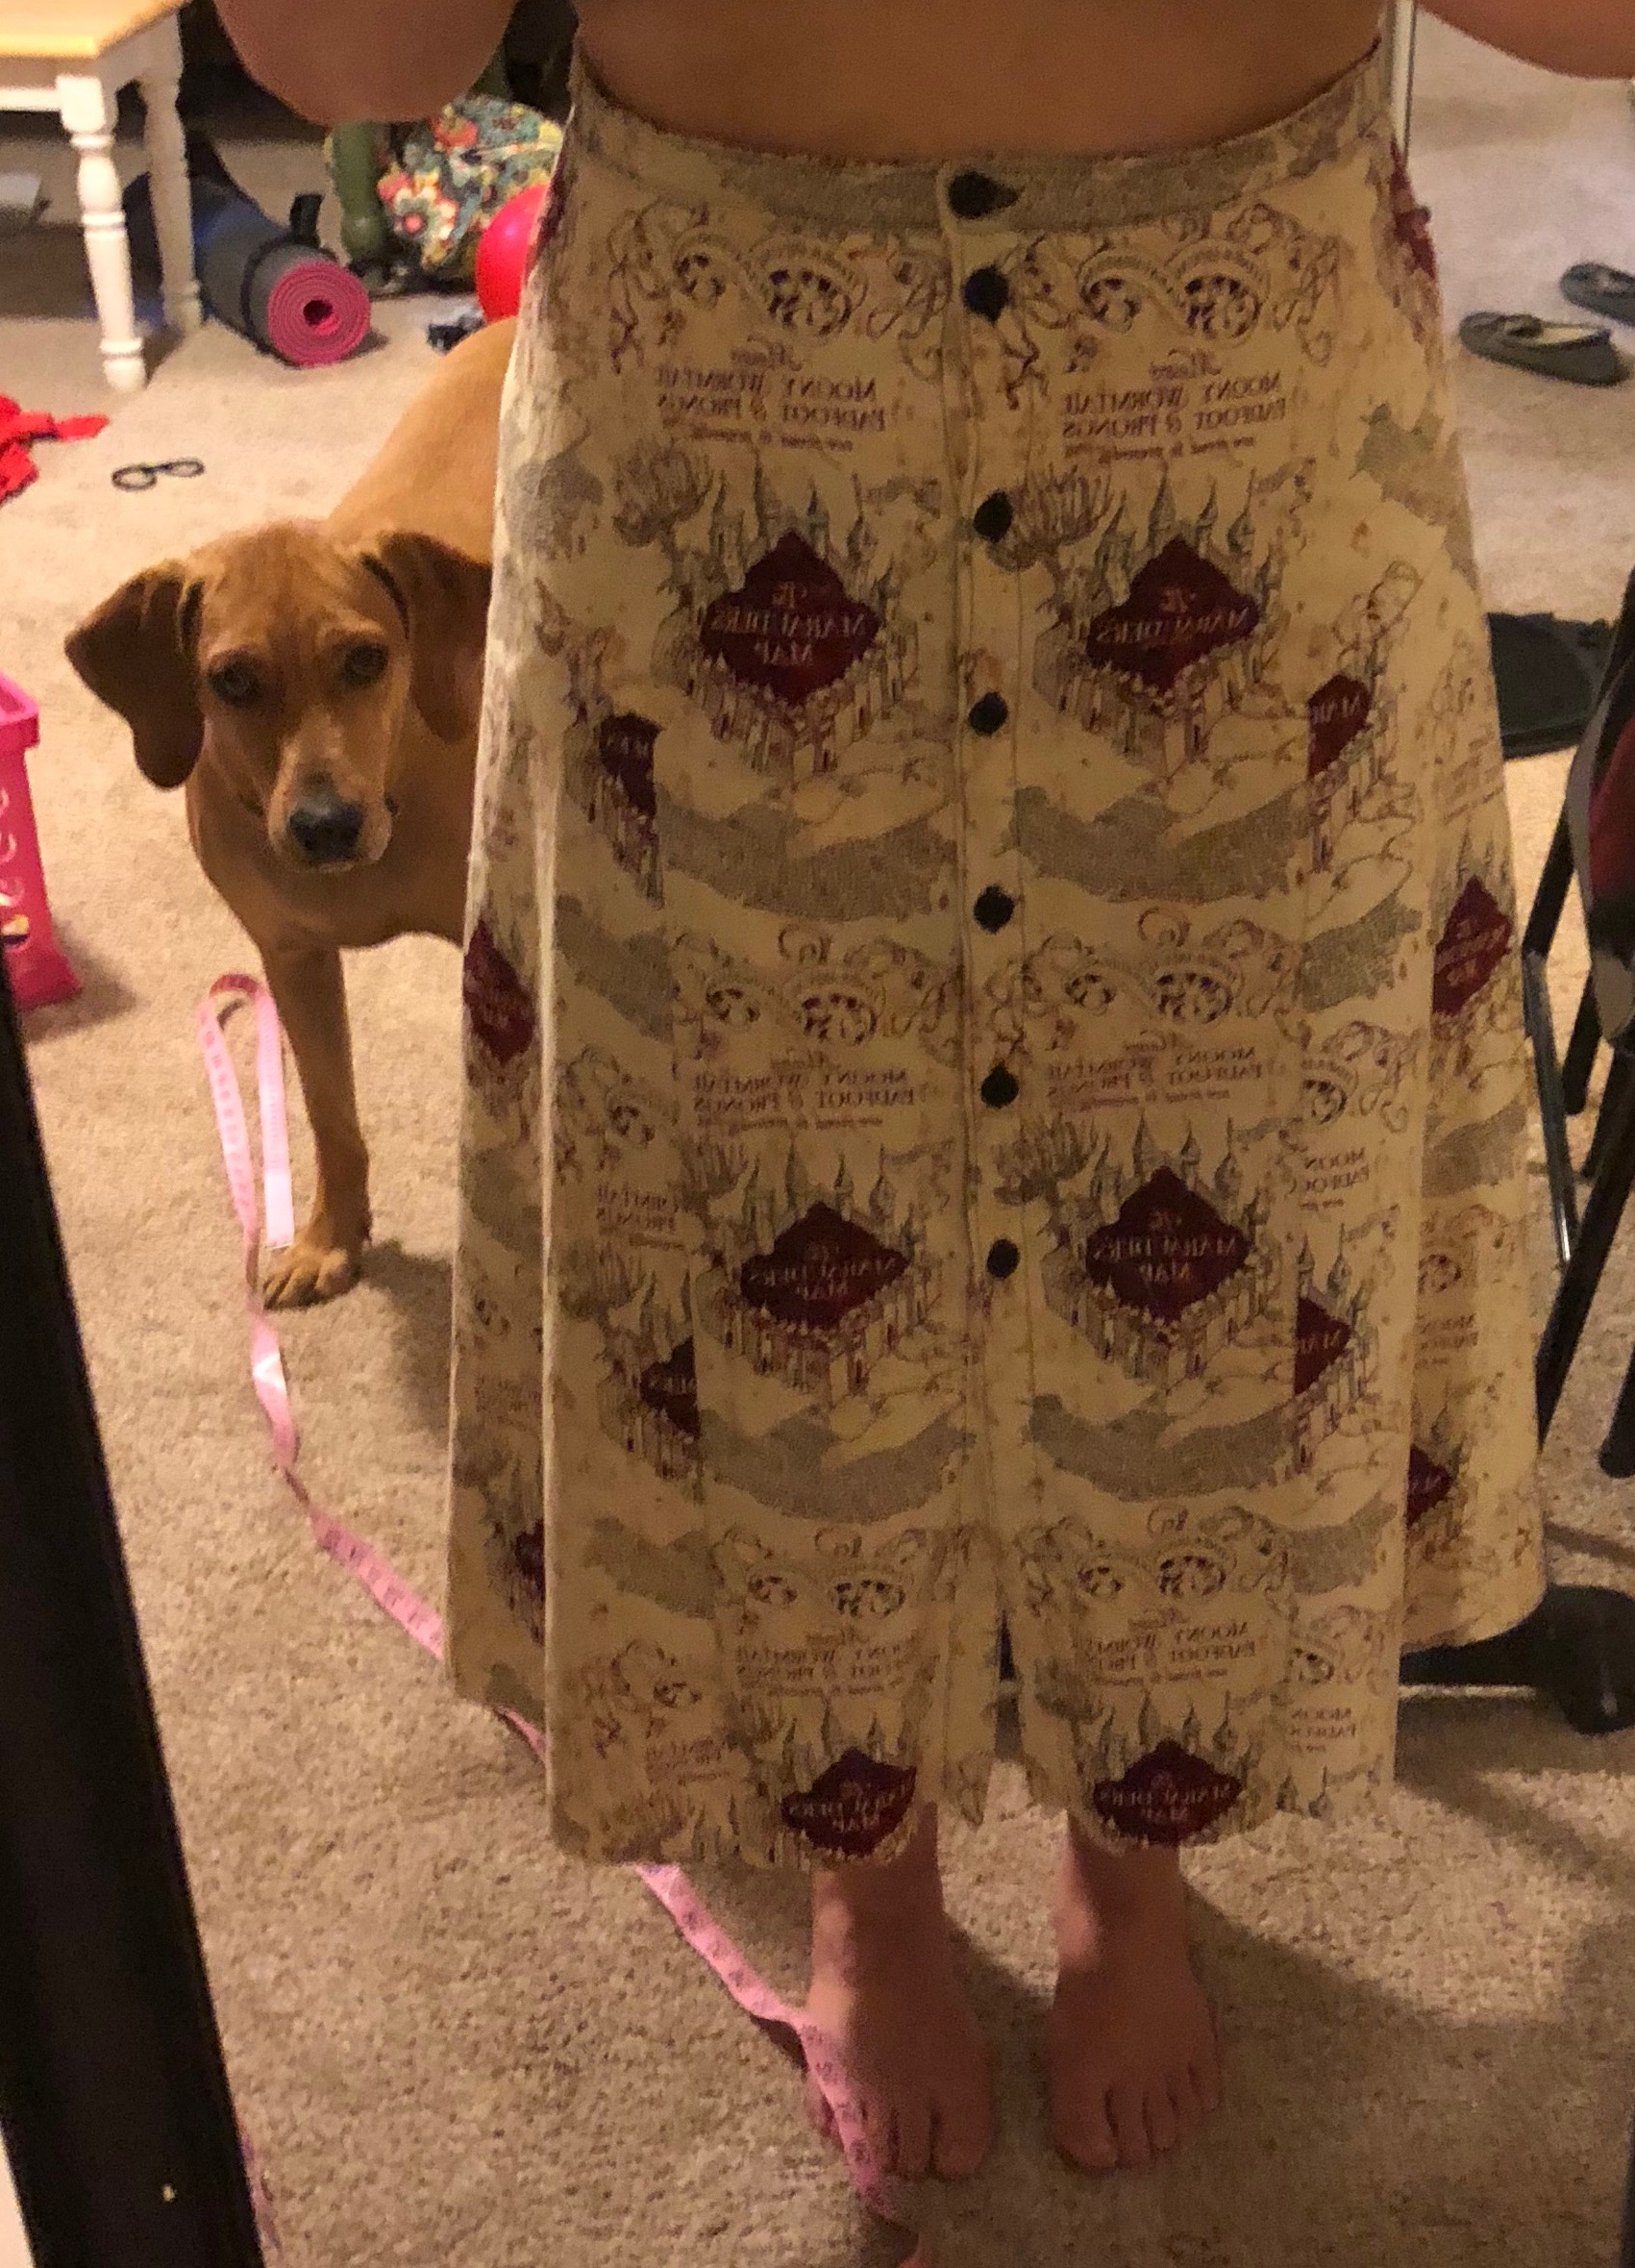 Pre-hem - plus a Ruby photobomb